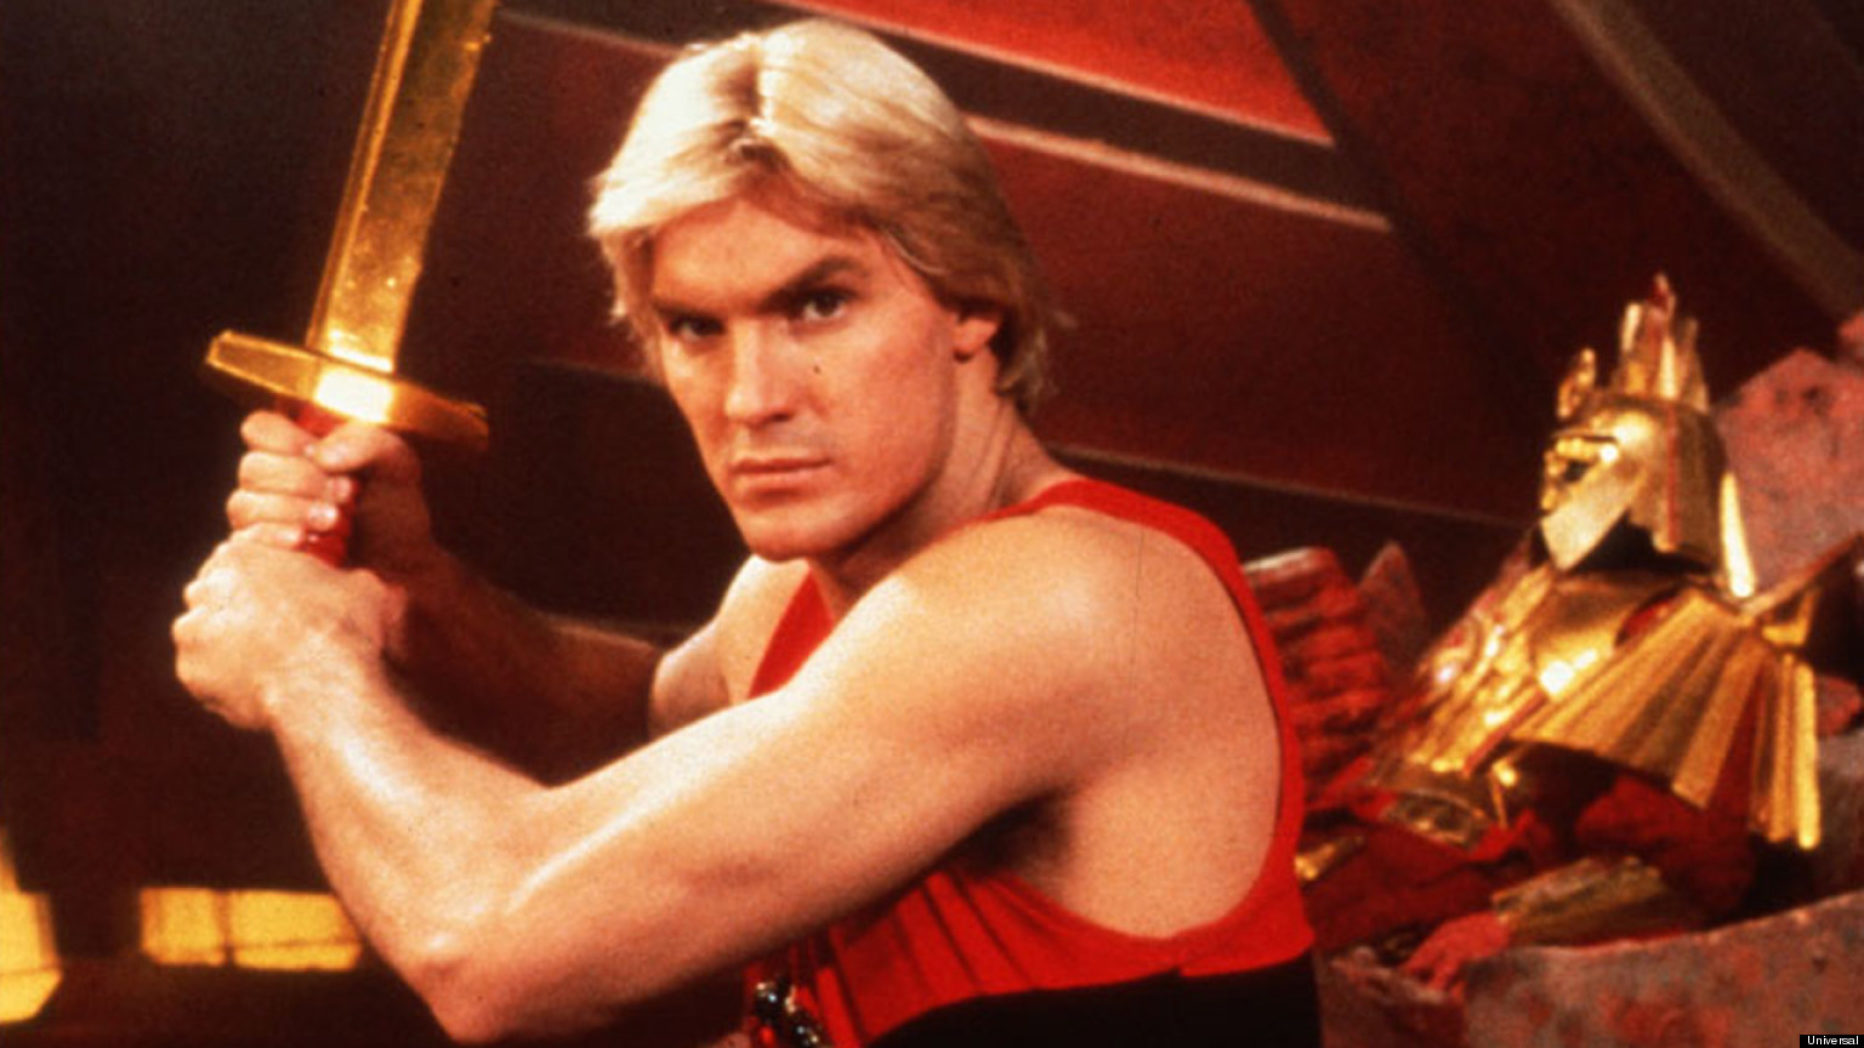 Sam Jones as Flash Gordon (1980)